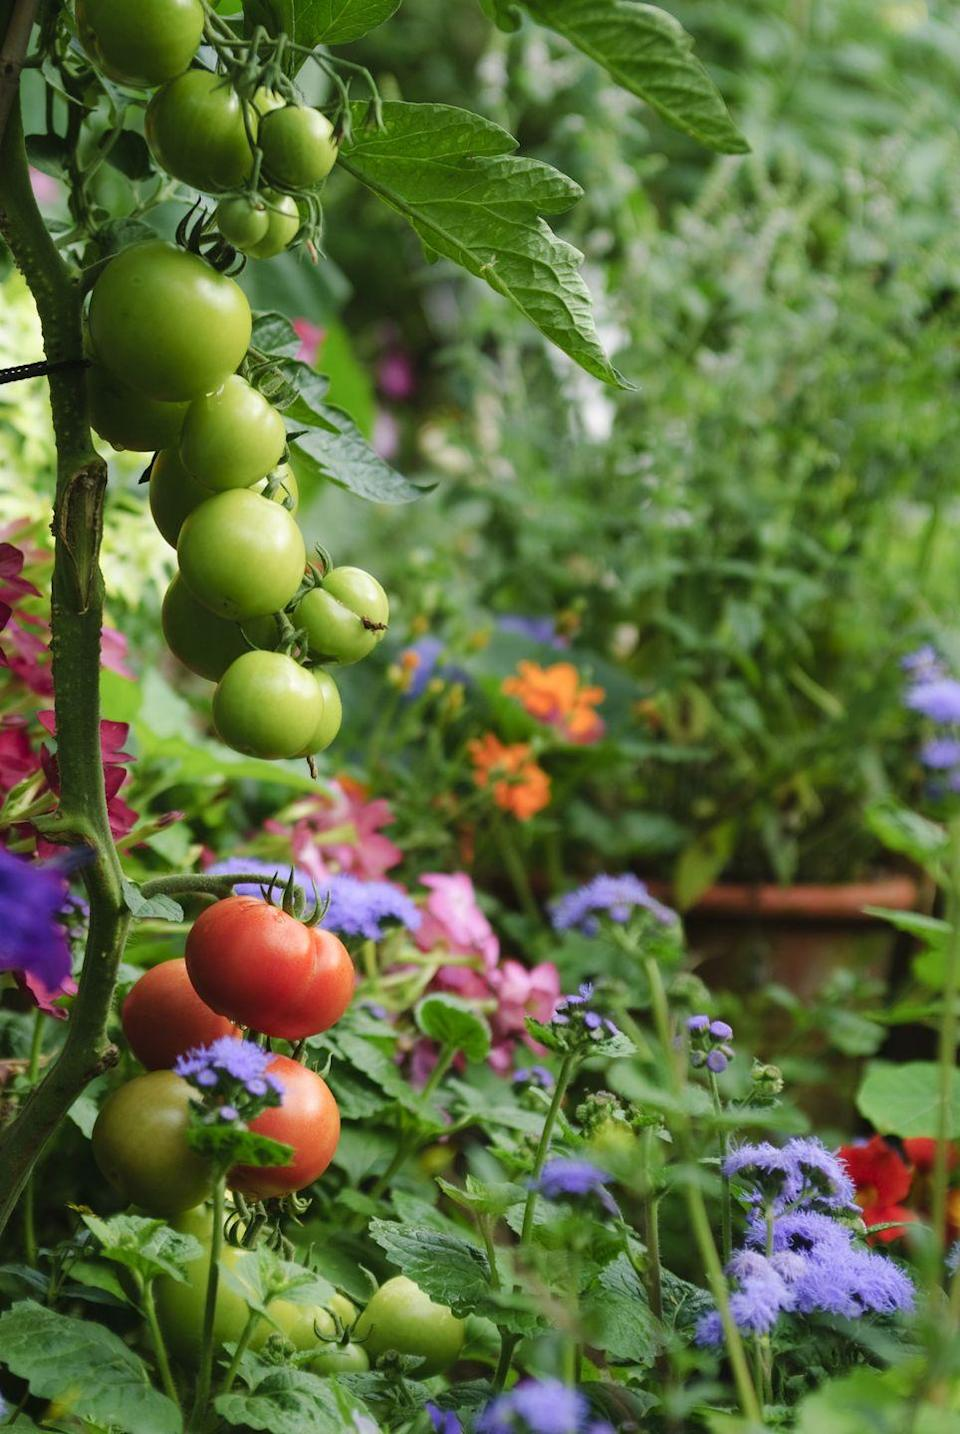 "<p>Placing flowers and veggies together <a href=""https://www.goodhousekeeping.com/home/gardening/a20706525/plant-flowers-vegetable-garden/"" rel=""nofollow noopener"" target=""_blank"" data-ylk=""slk:in the same beds"" class=""link rapid-noclick-resp"">in the same beds</a> doesn't just save space. It'll help boost your yields and keep plants happy by attracting more pollinators. </p><p><a href=""https://www.goodhousekeeping.com/home/gardening/a20706481/companion-garden-planting/"" rel=""nofollow noopener"" target=""_blank"" data-ylk=""slk:RELATED: 26 Plants You Should Always Grow Side-By-Side"" class=""link rapid-noclick-resp""><strong>RELATED:</strong> 26 Plants You Should Always Grow Side-By-Side</a></p>"